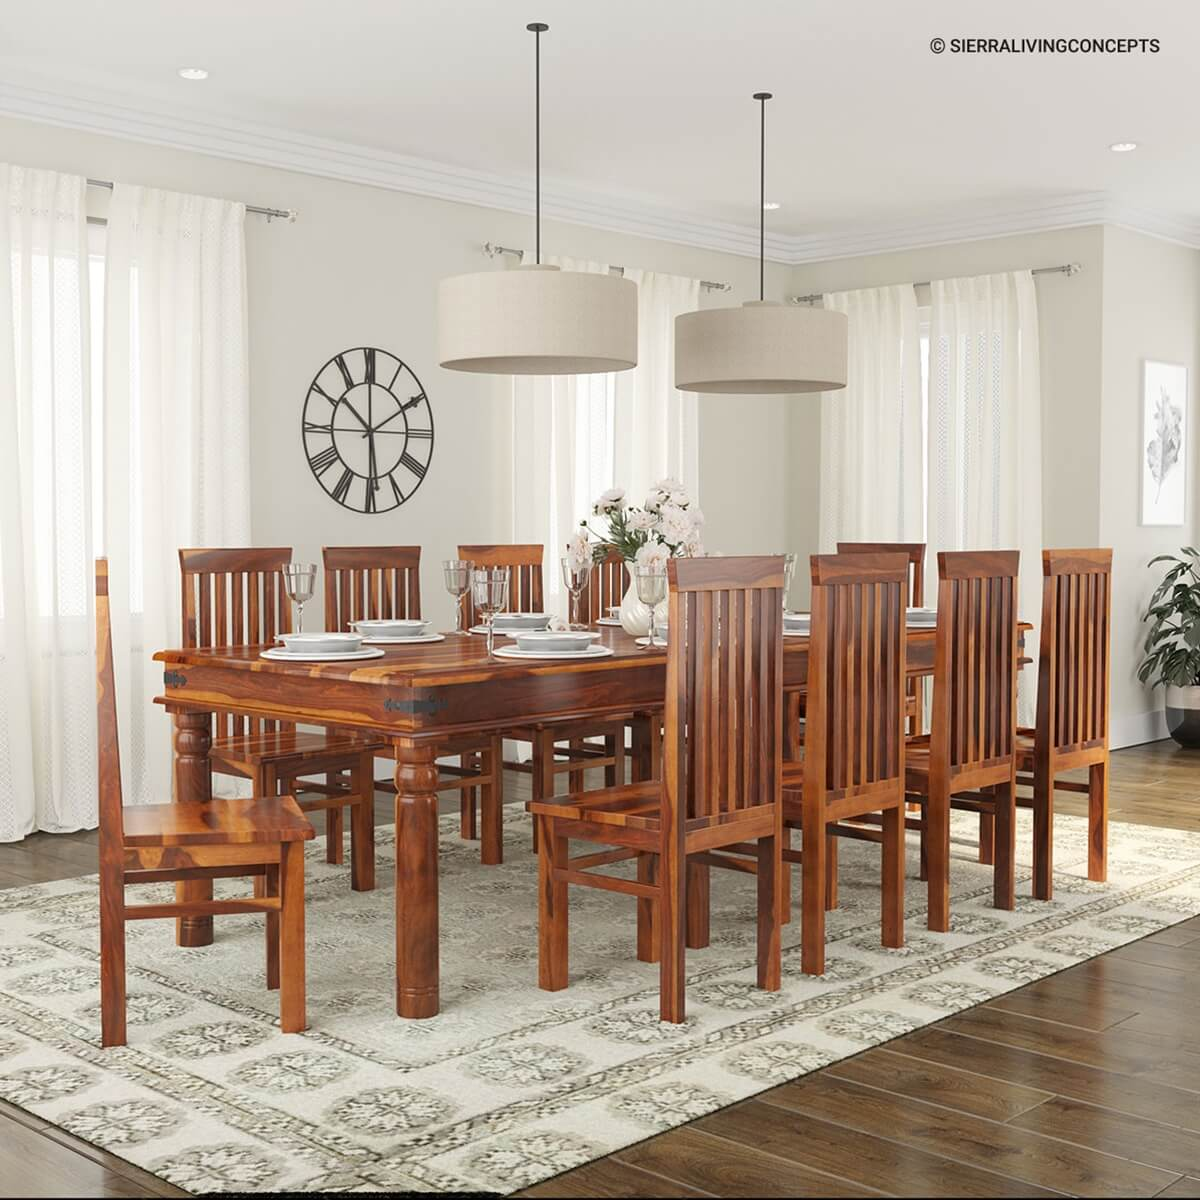 10 chair dining room set rustic lincoln study large dining room table chair set for 7257